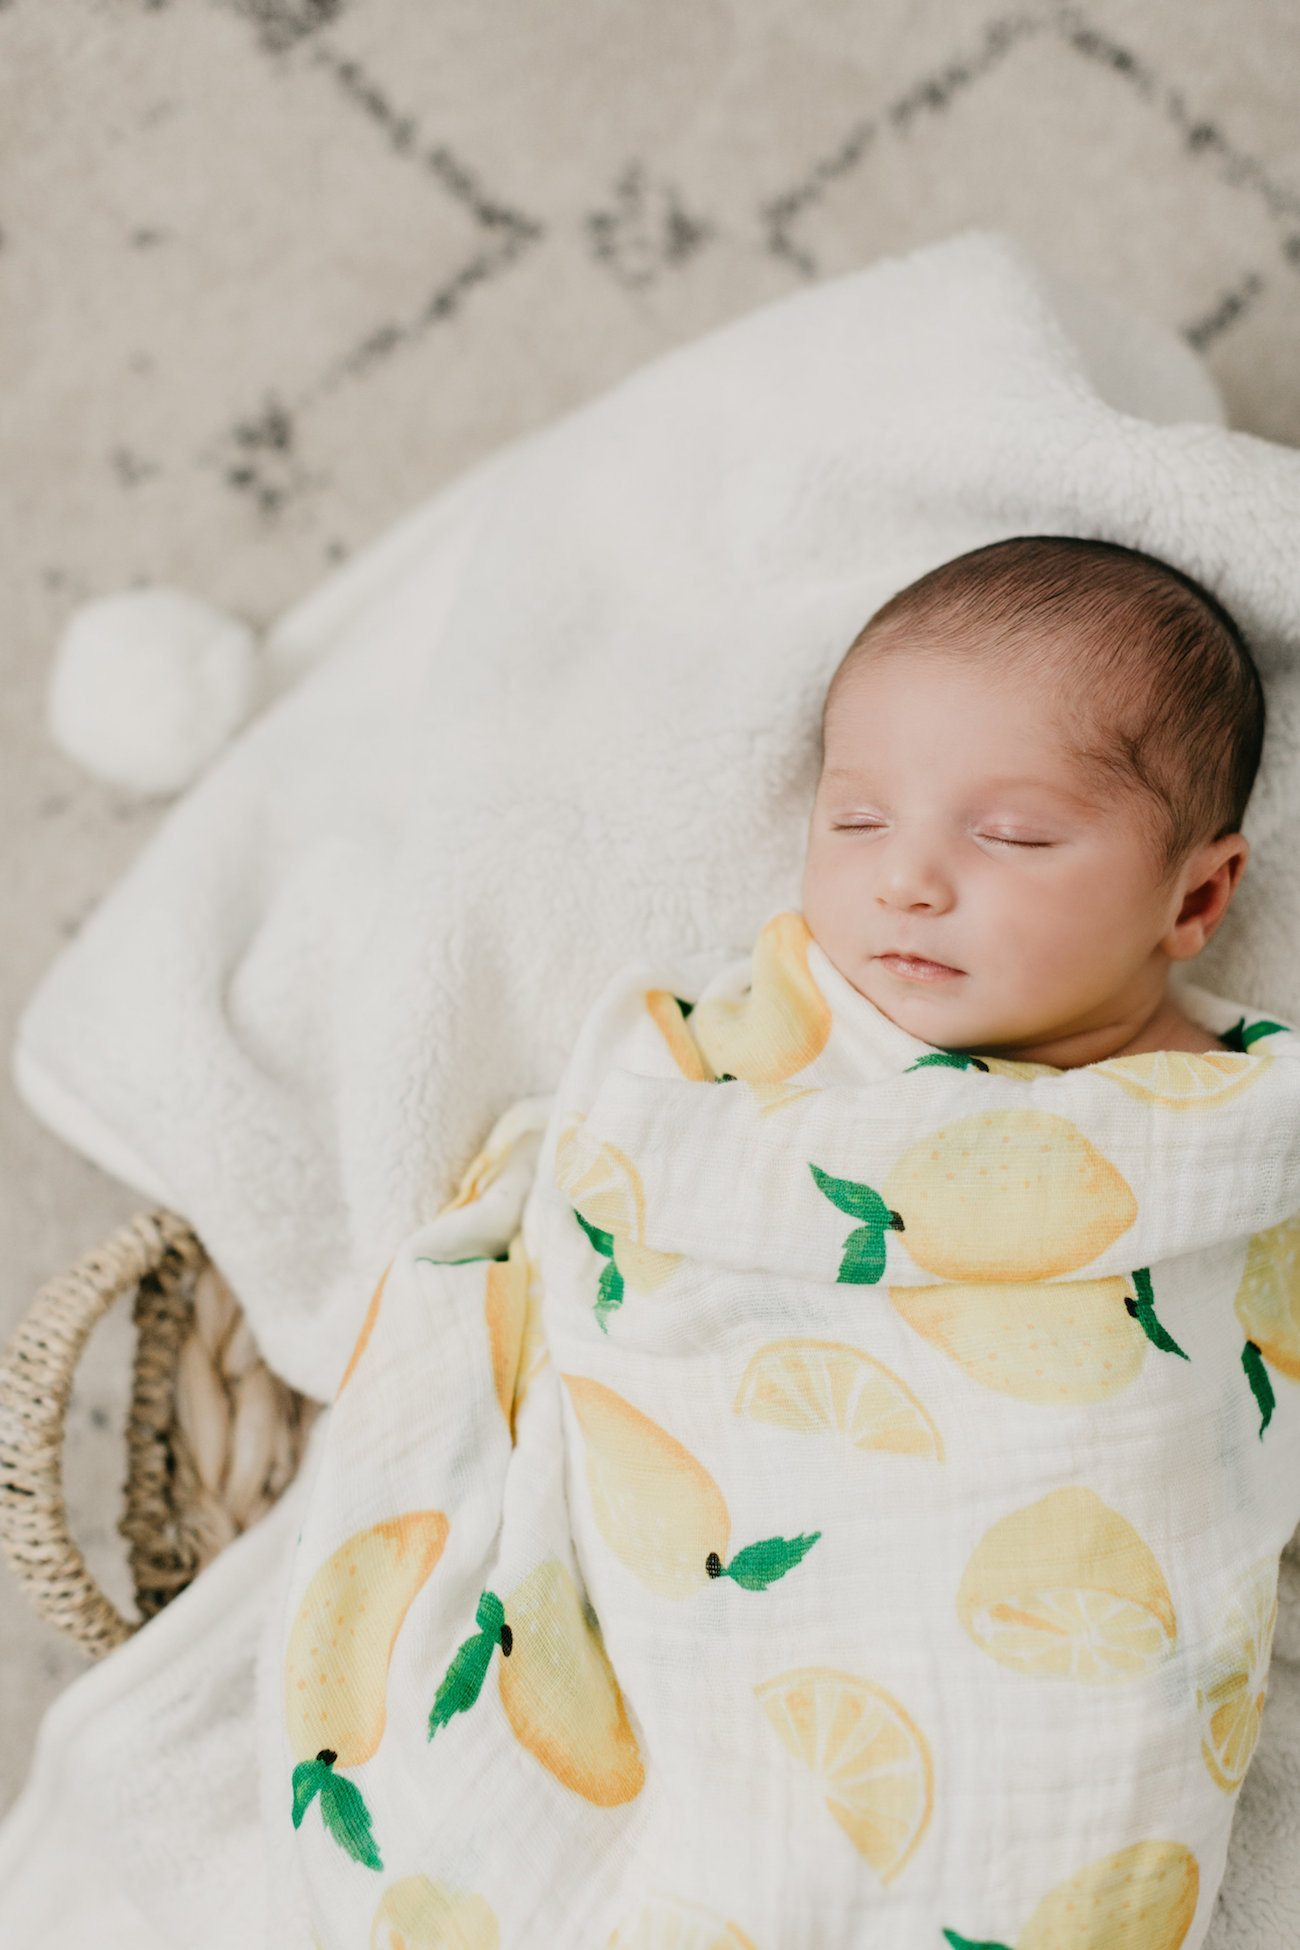 Florida Newborn Photos + Tropical Nursery Tour | Home decor inspiration, entertaining tips, party ideas and more from @cydconverse